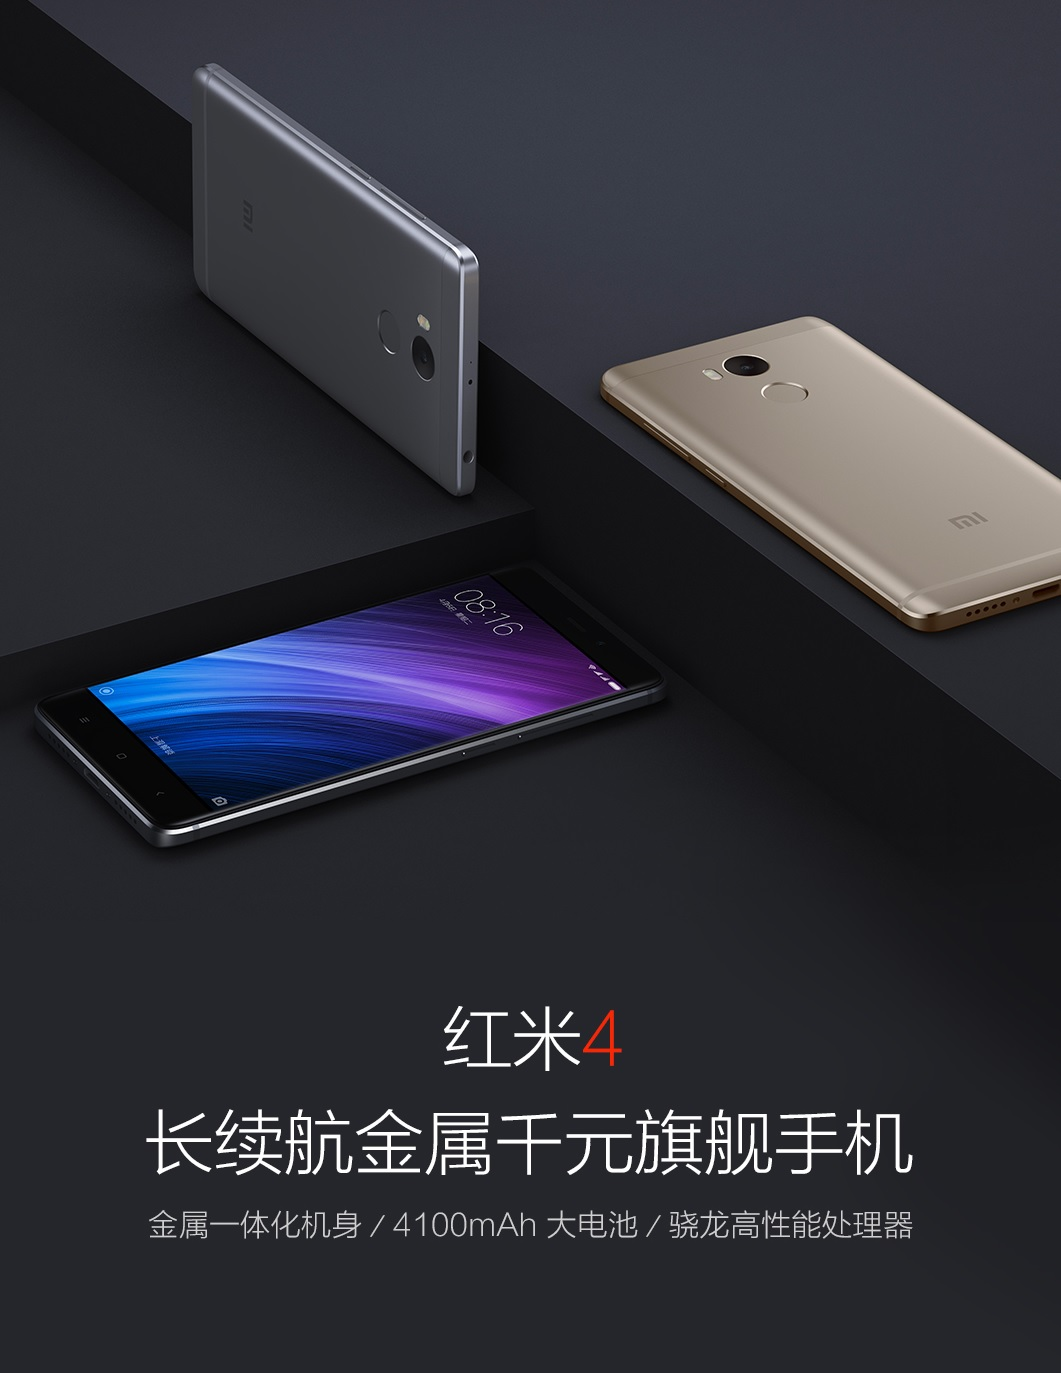 xiaomi-redmi-4-full-view-all-sides-full-specification